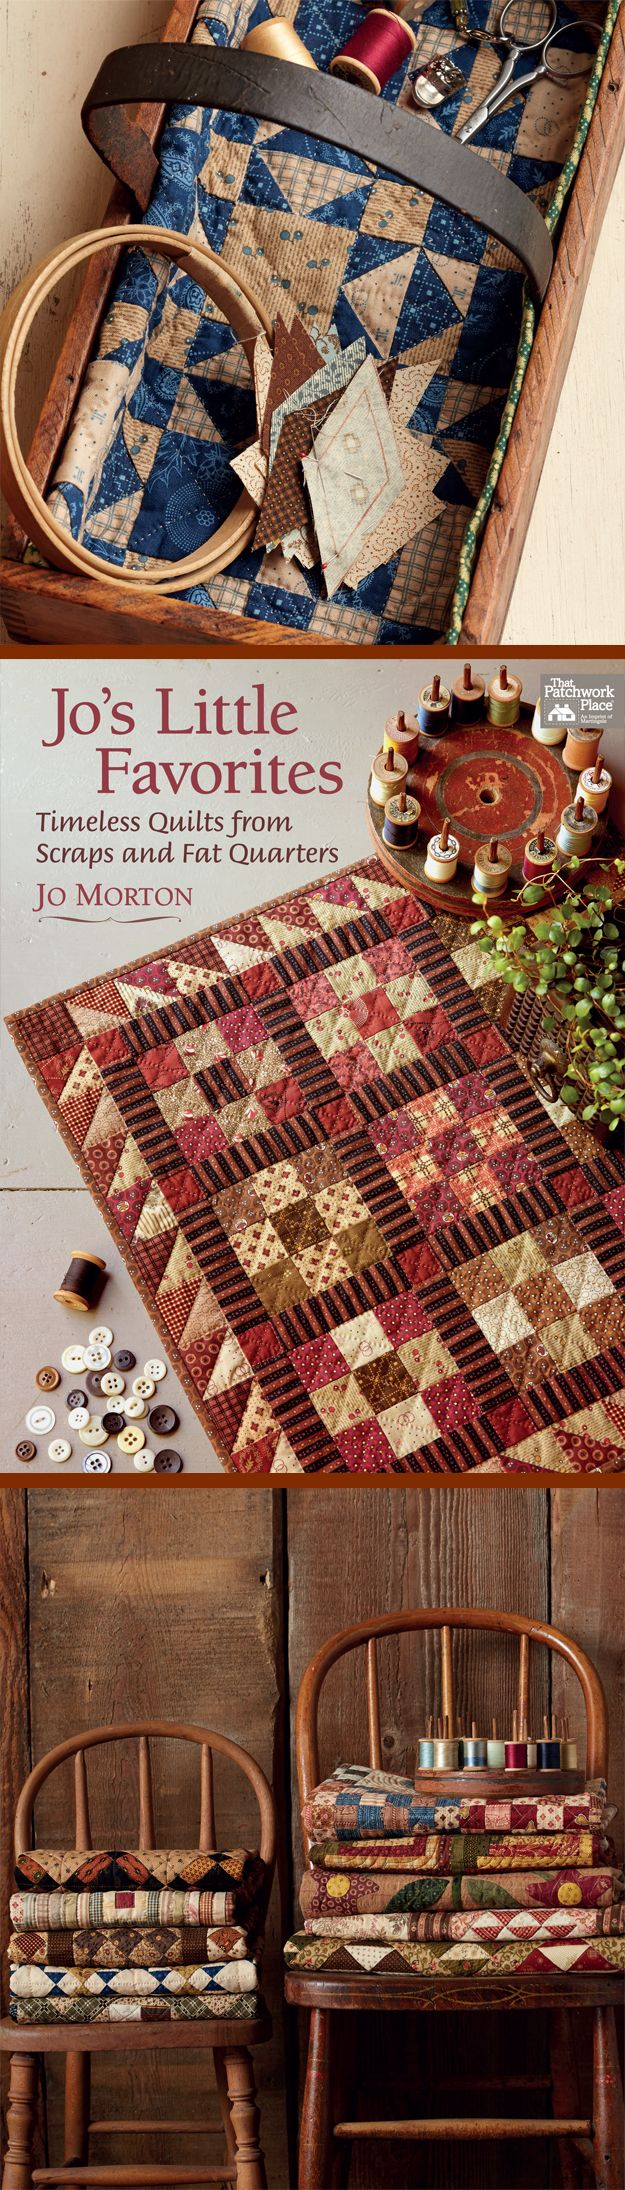 Make small quilts with your stash of reproduction scraps and fat quarters - and get cool ideas for decorating when they're finished - from quilting icon Jo Morton.